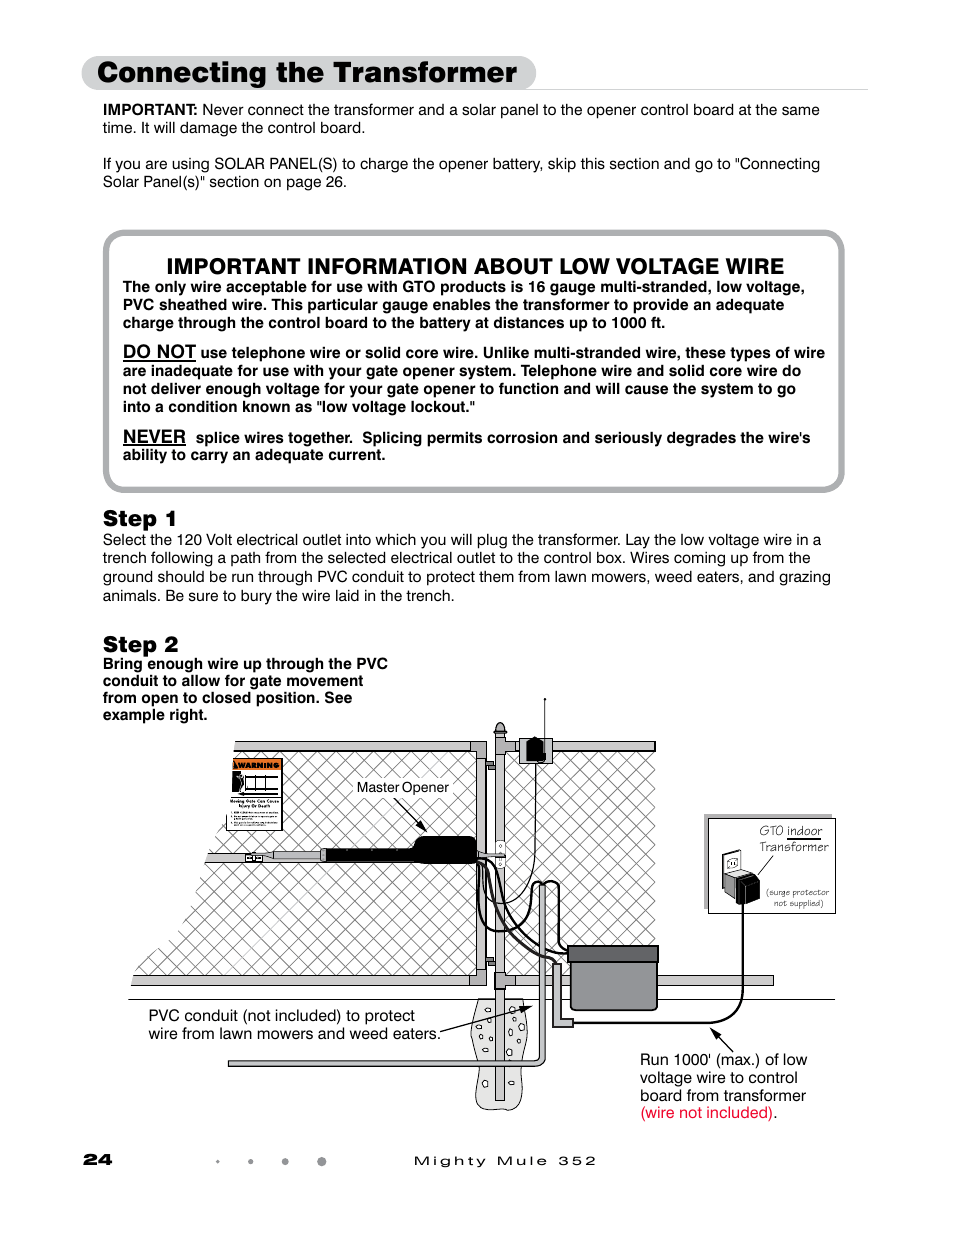 medium resolution of connecting the transformer step 1 step 2 gto mighty mule 352 user manual page 28 48